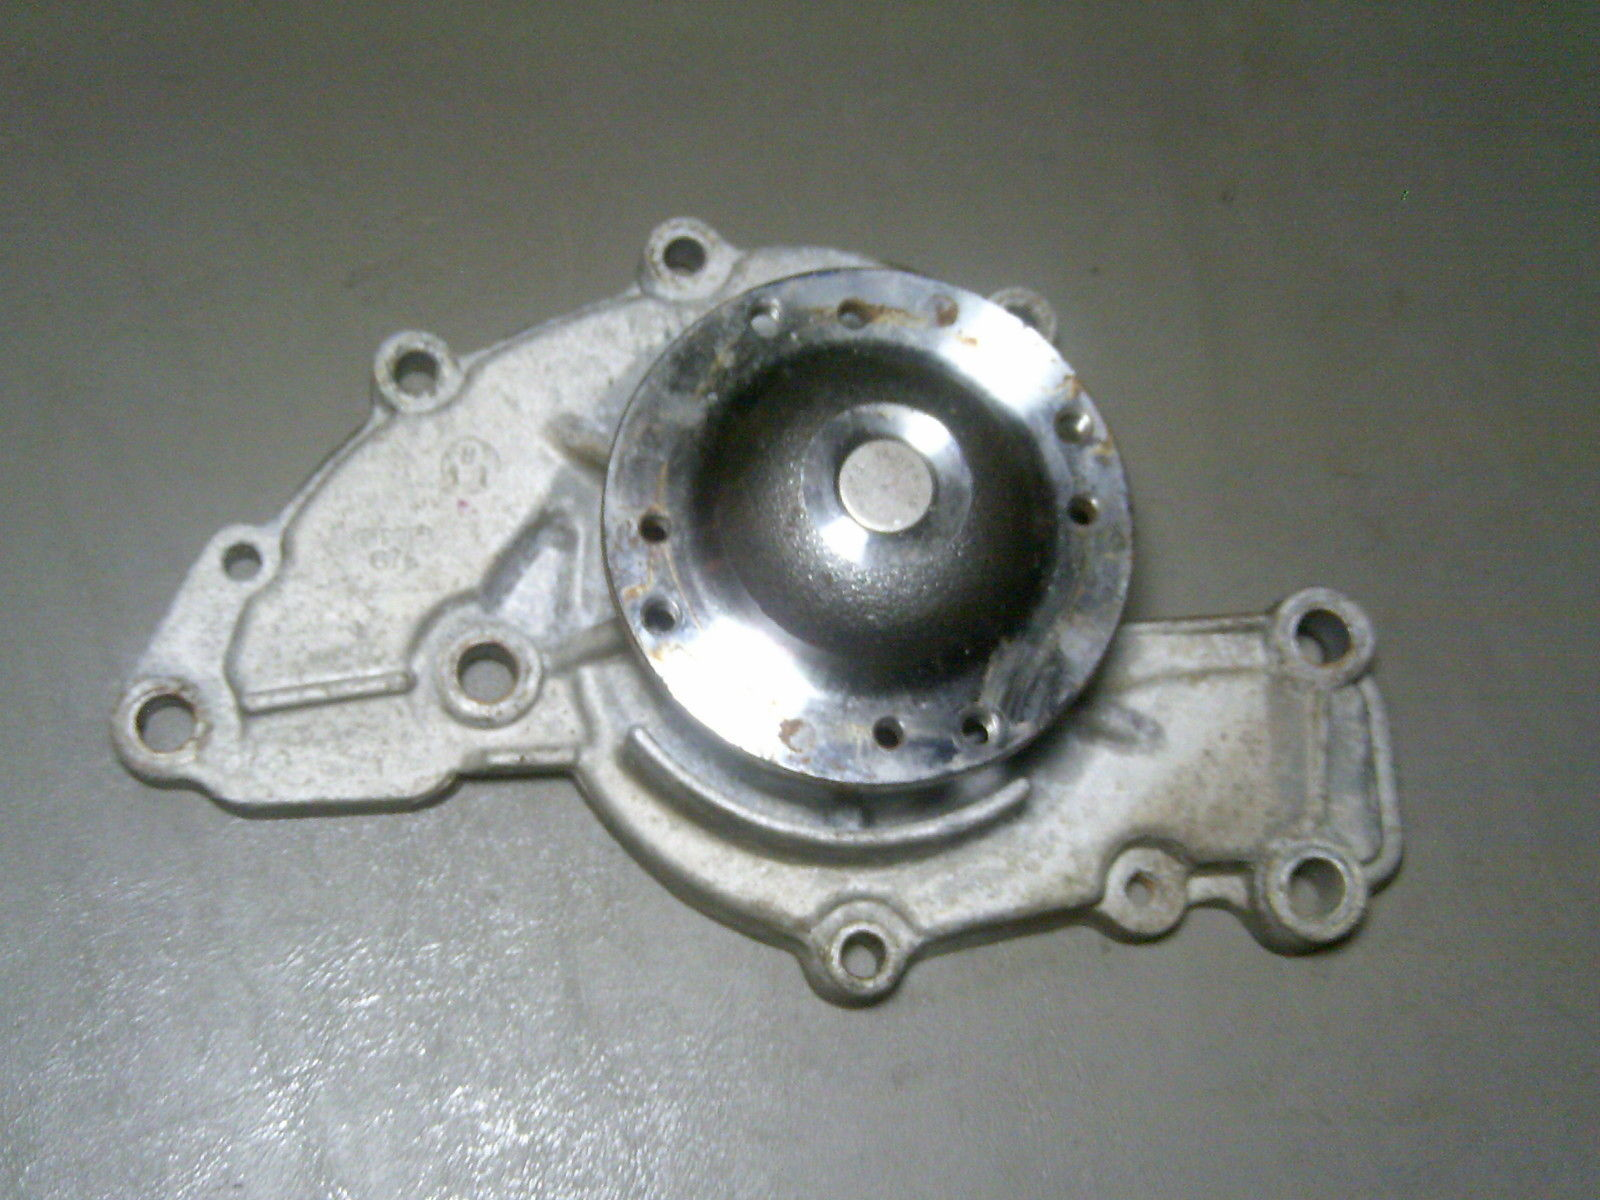 Primary image for 96-02 Camaro Firebird 98-03 Monte Carlo 3.8L Water Pump / ONLY FITS 3.8L